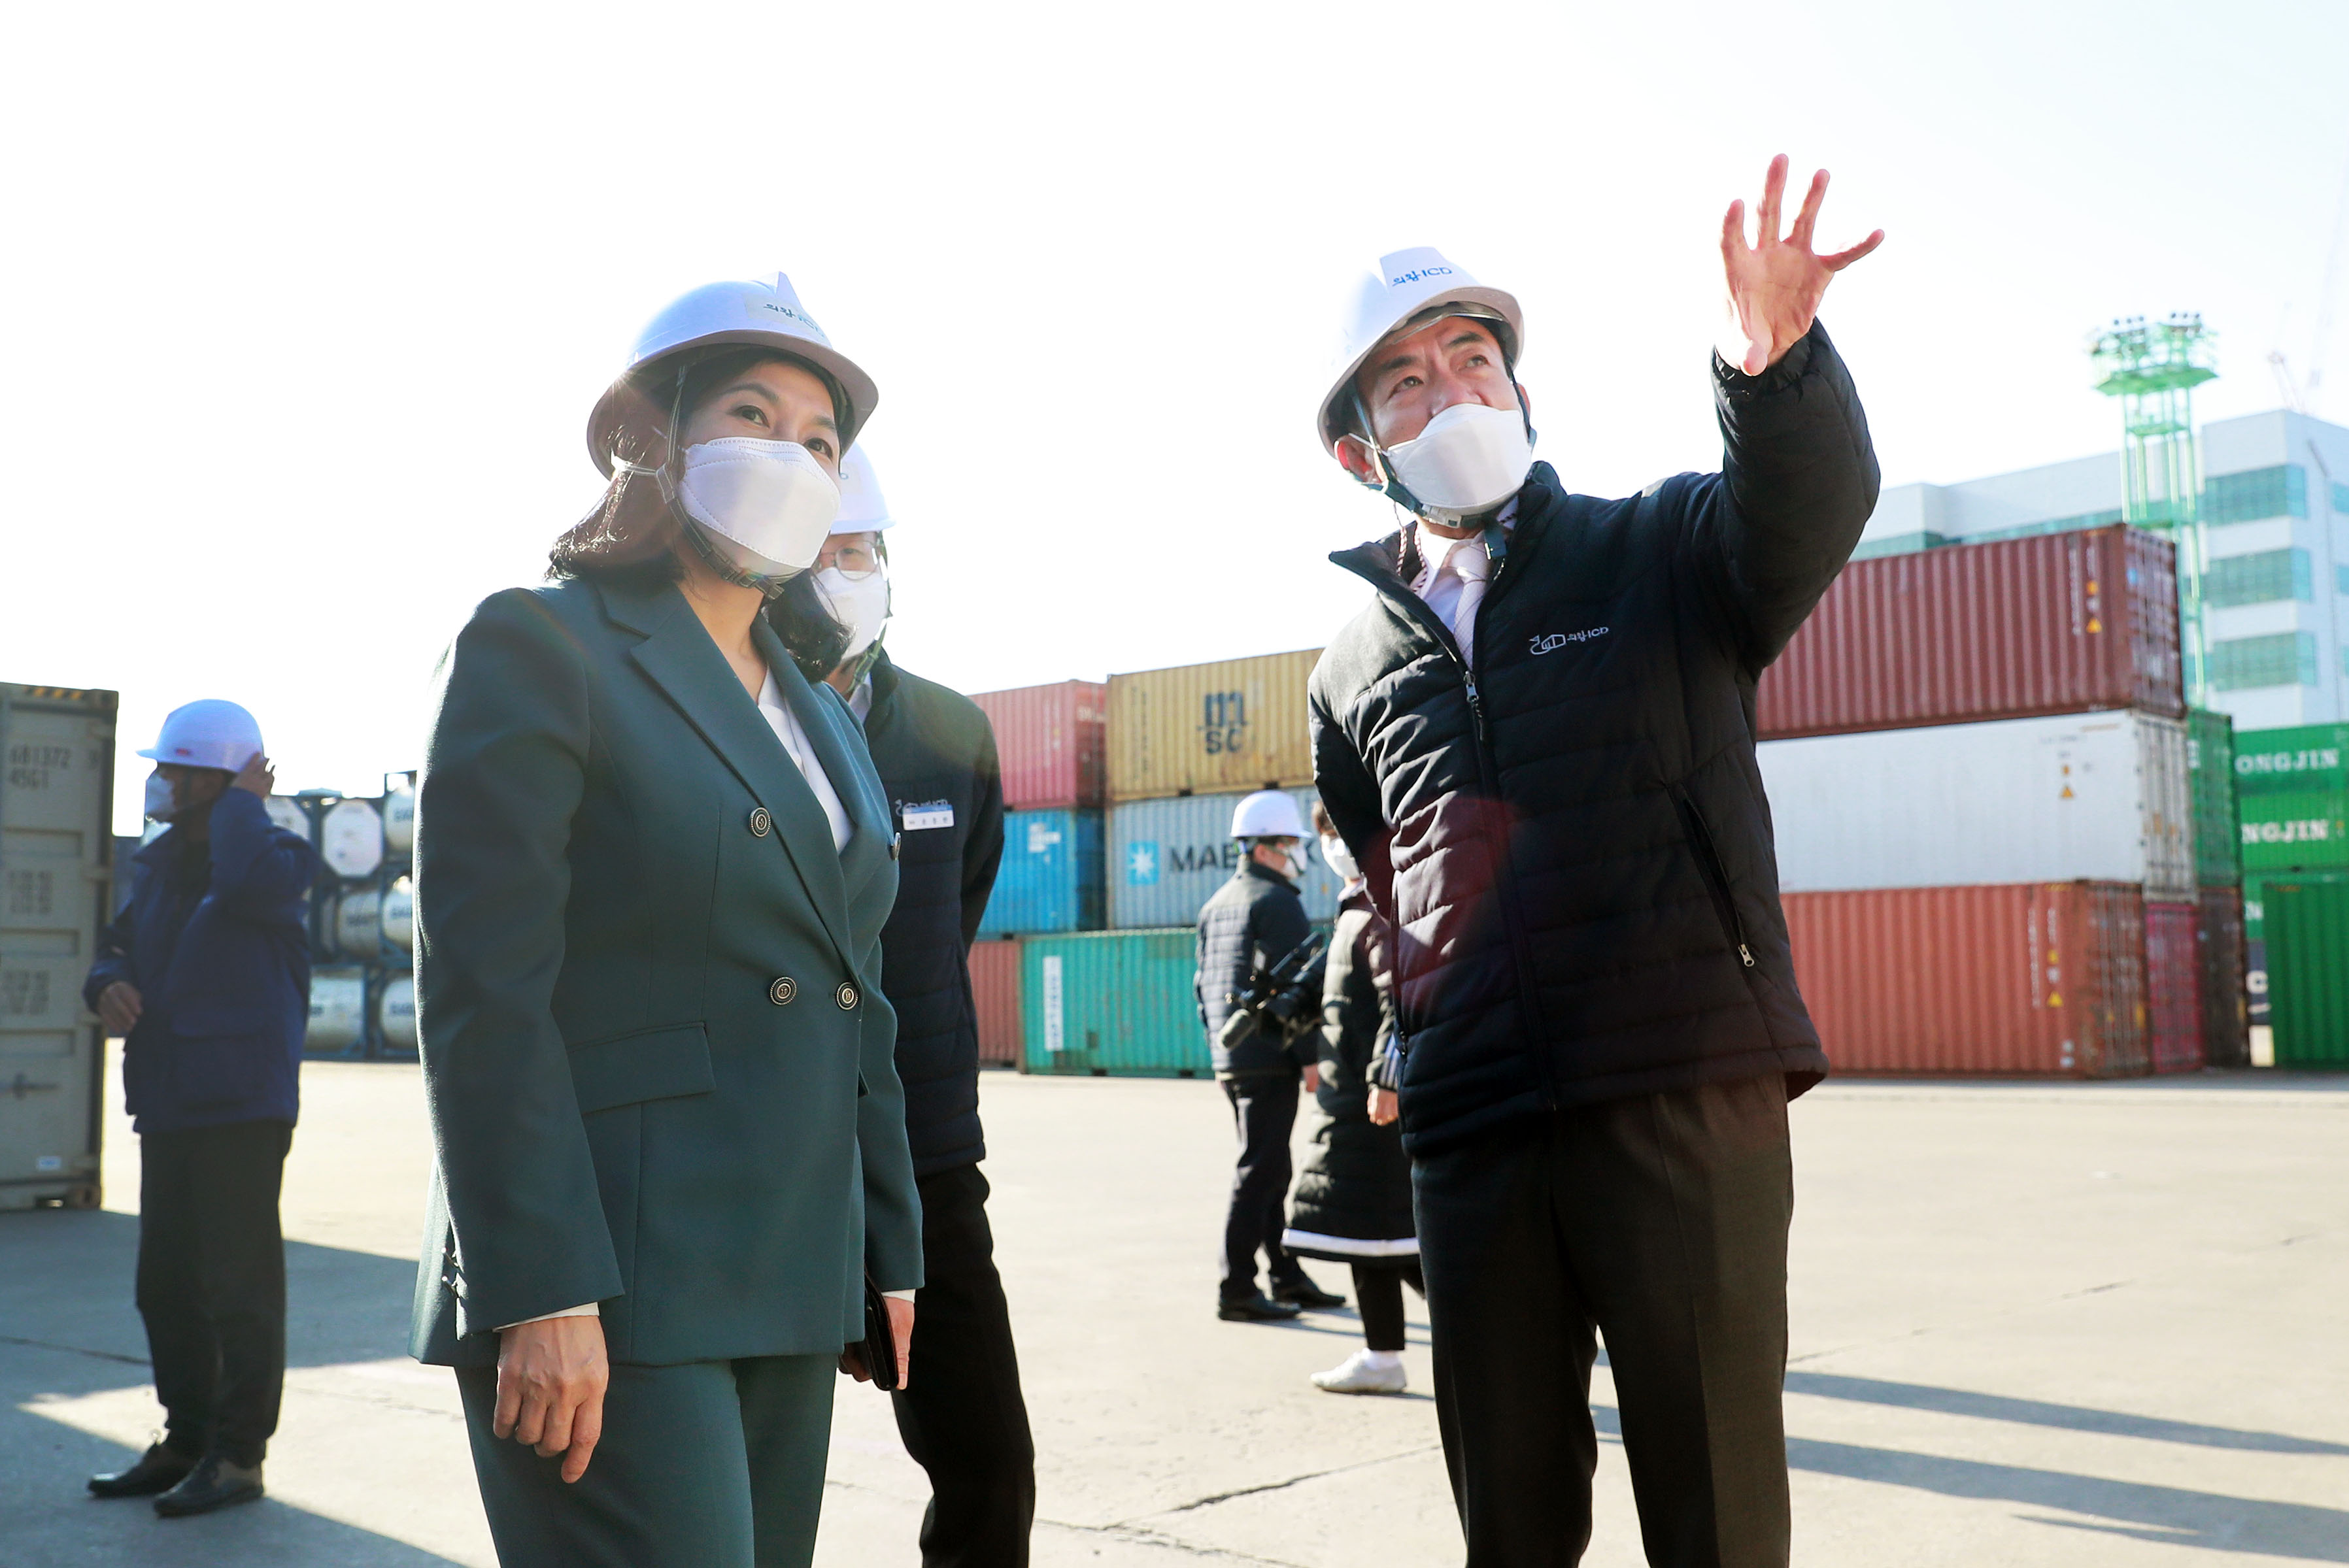 Trade Minister visits logistics site ahead of Lunar New Year holidays